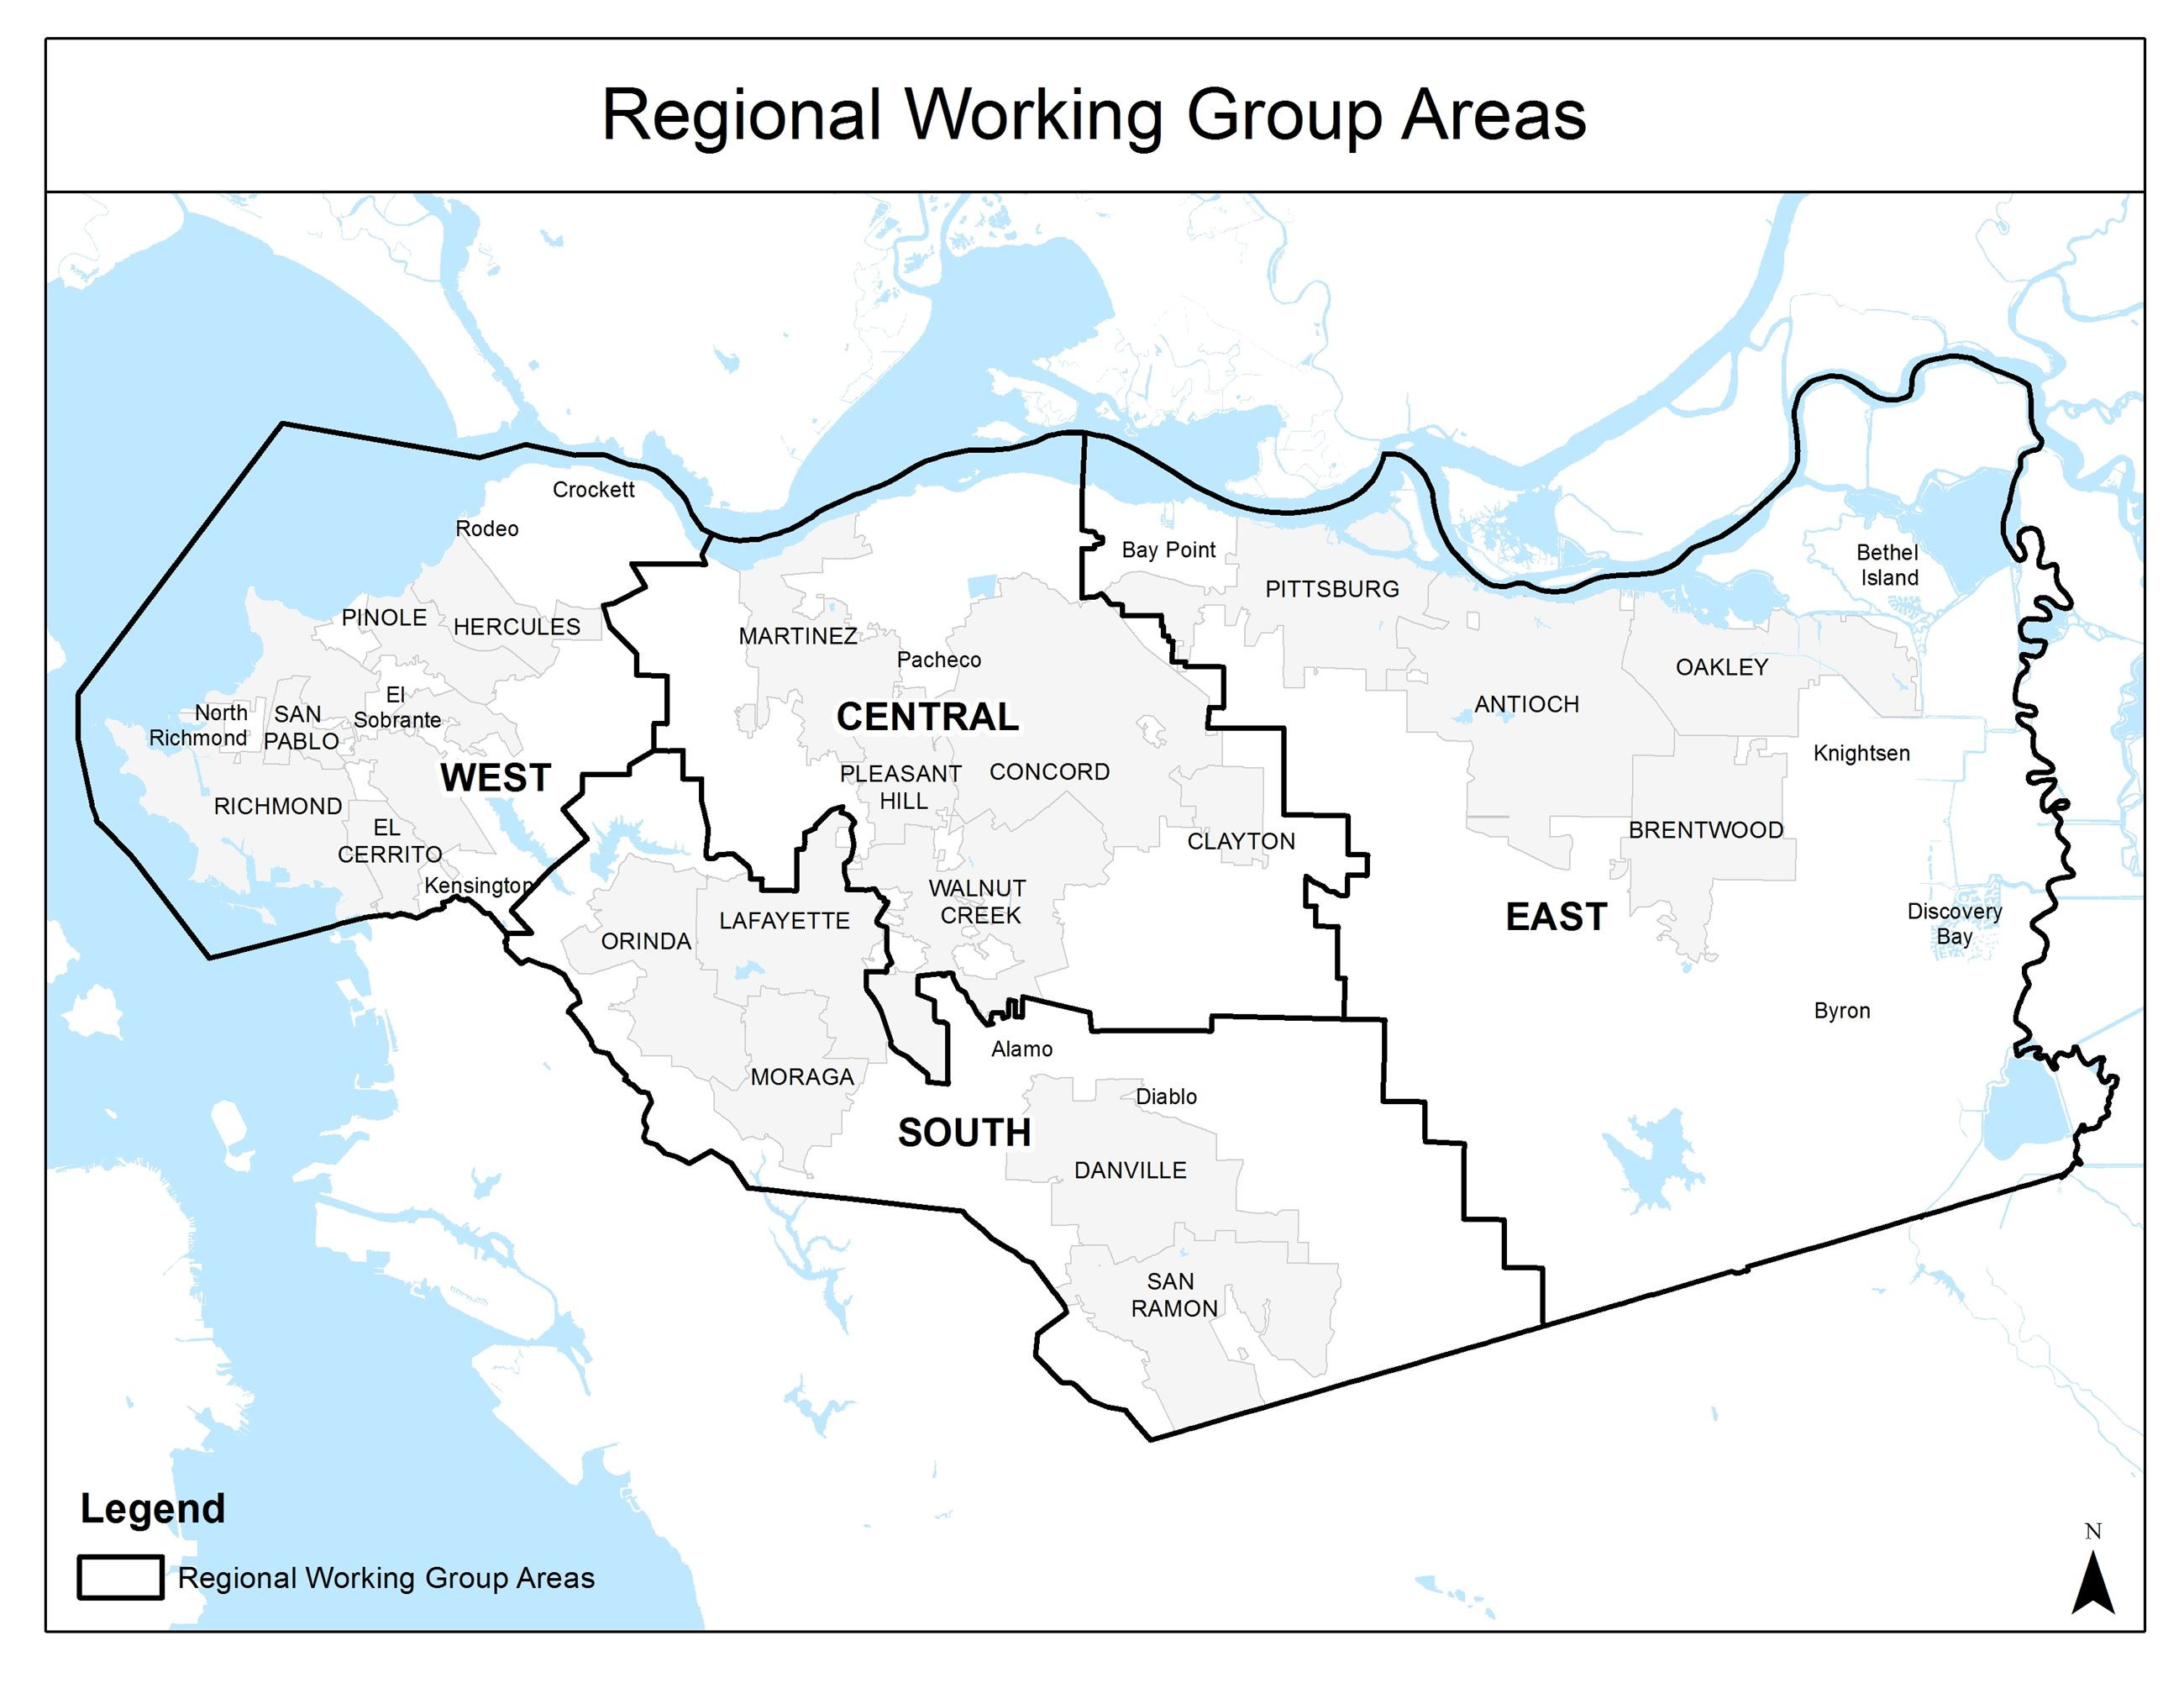 Regional Working Group Map